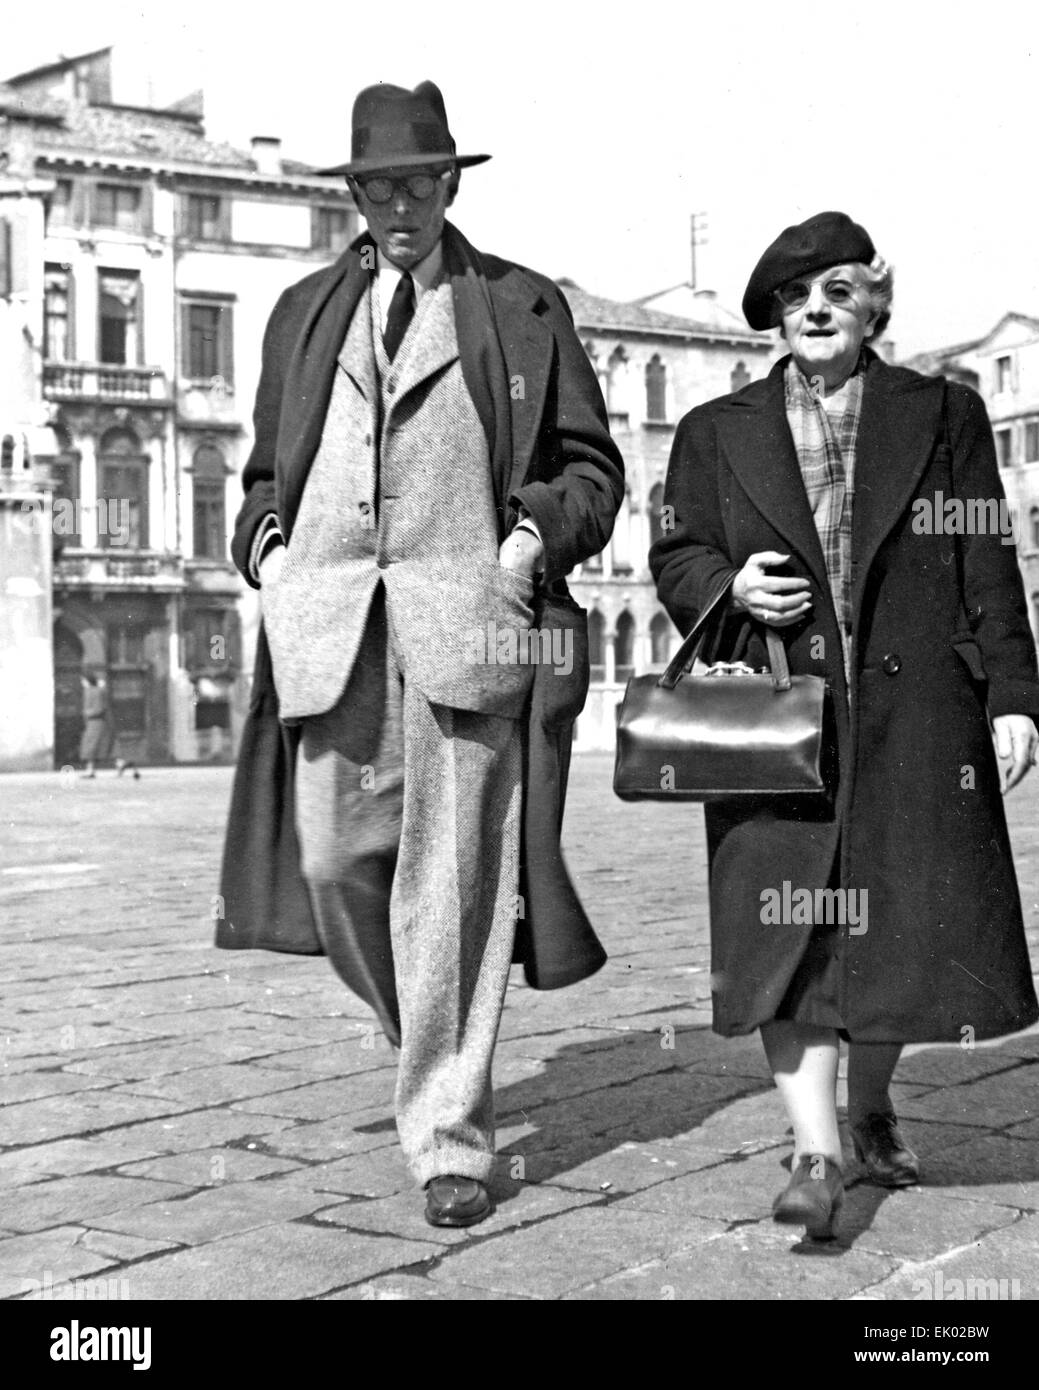 SINCLAIR LEWIS (1885-1951) American novelist and playwright in Venice with his mother-in-law Kathryn Powers in 1950. - Stock Image